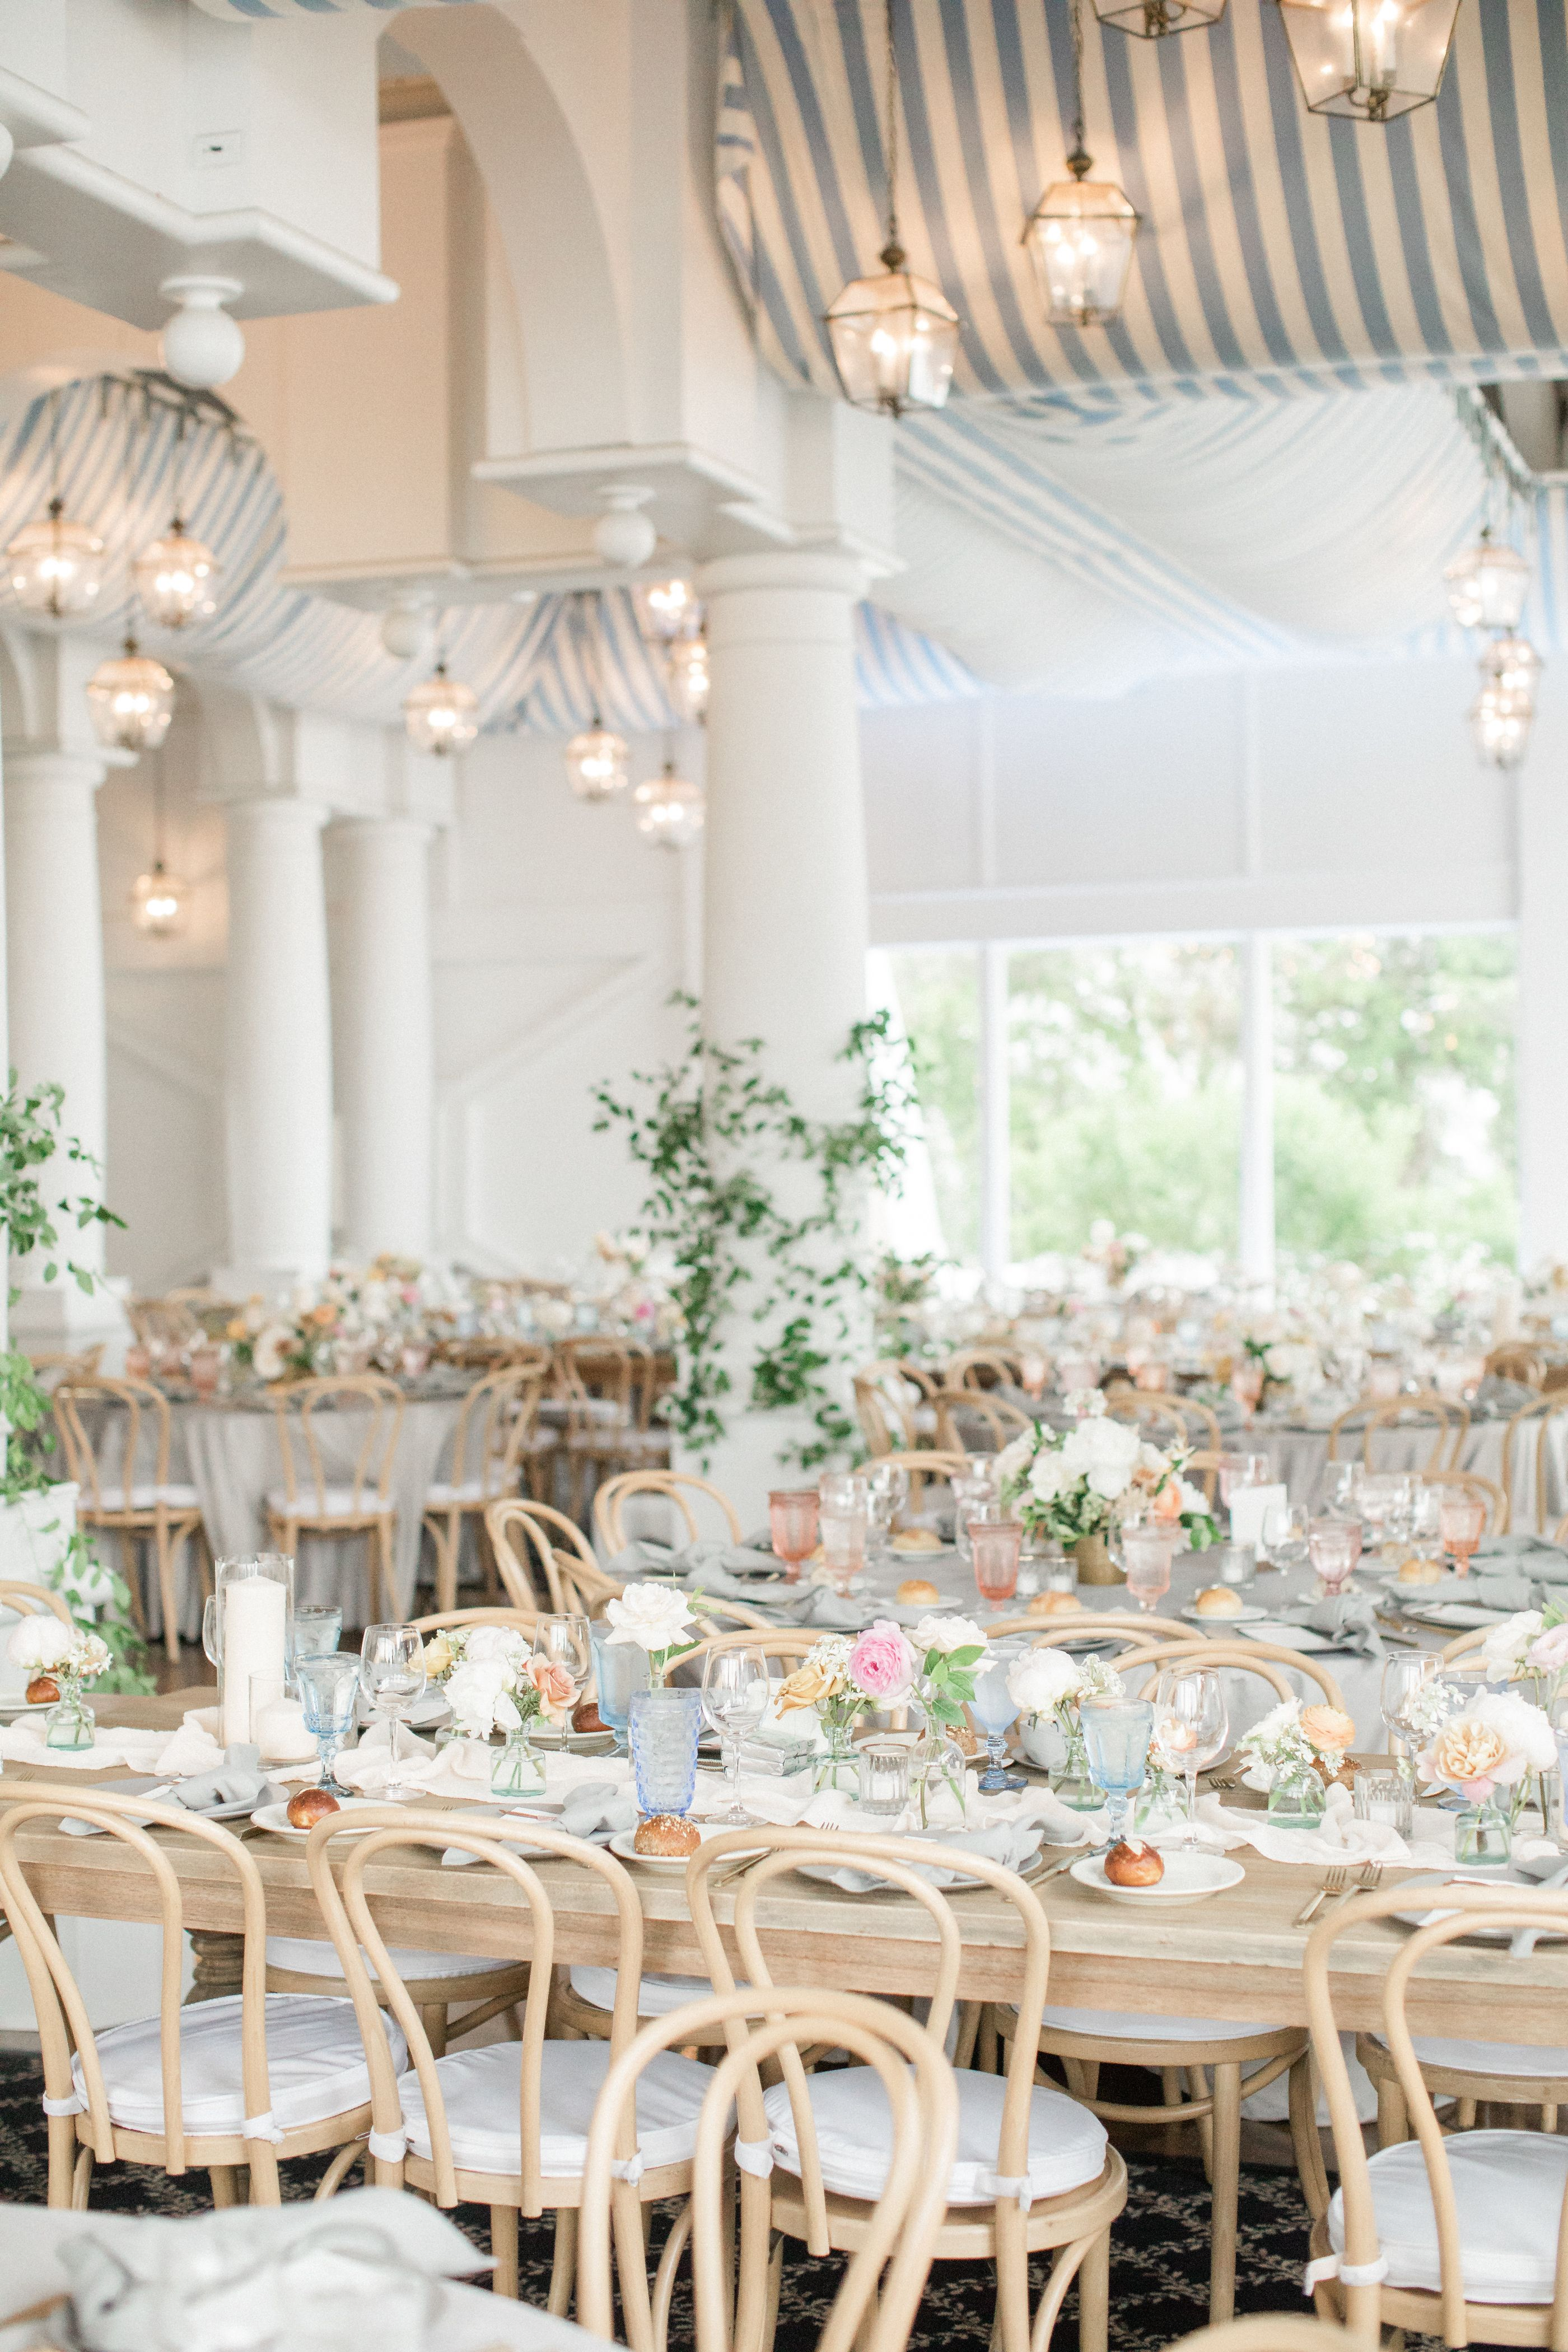 Bohemian Black Tie Wedding At Oceanbleu For These High School Sweethearts With Images Black Tie Wedding Wedding Dreamer Wedding Reception Decorations